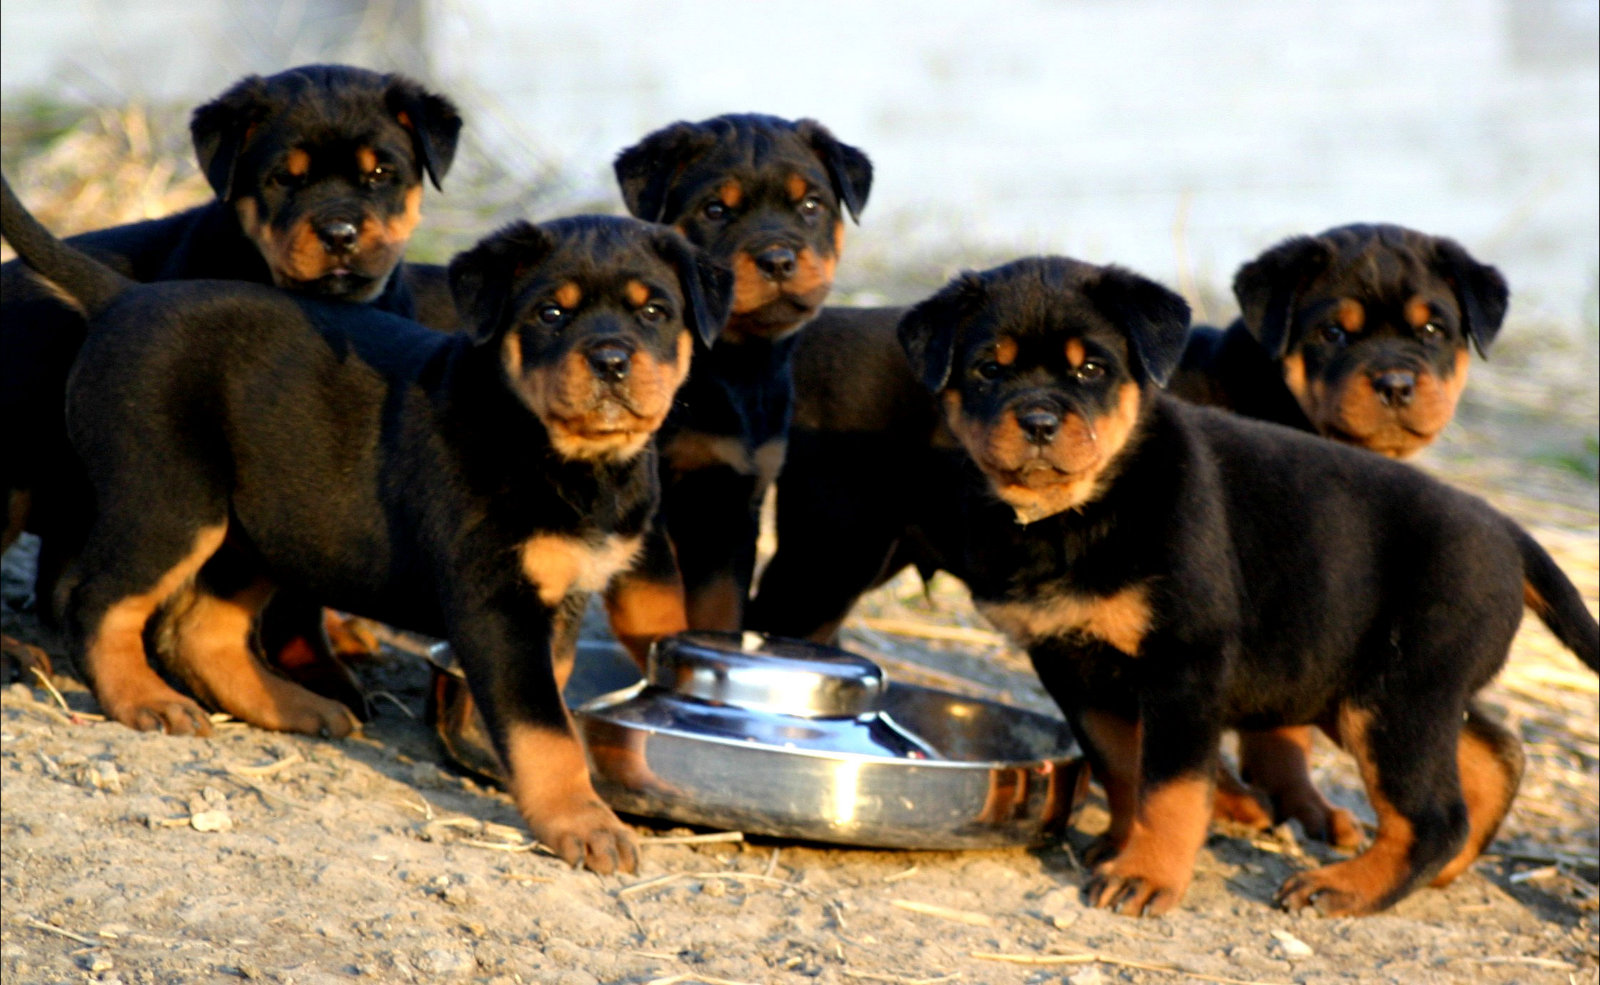 /Bubbles___Rottweiler_Puppies_by_RiotGirl102793.jpg?psid=1[/img